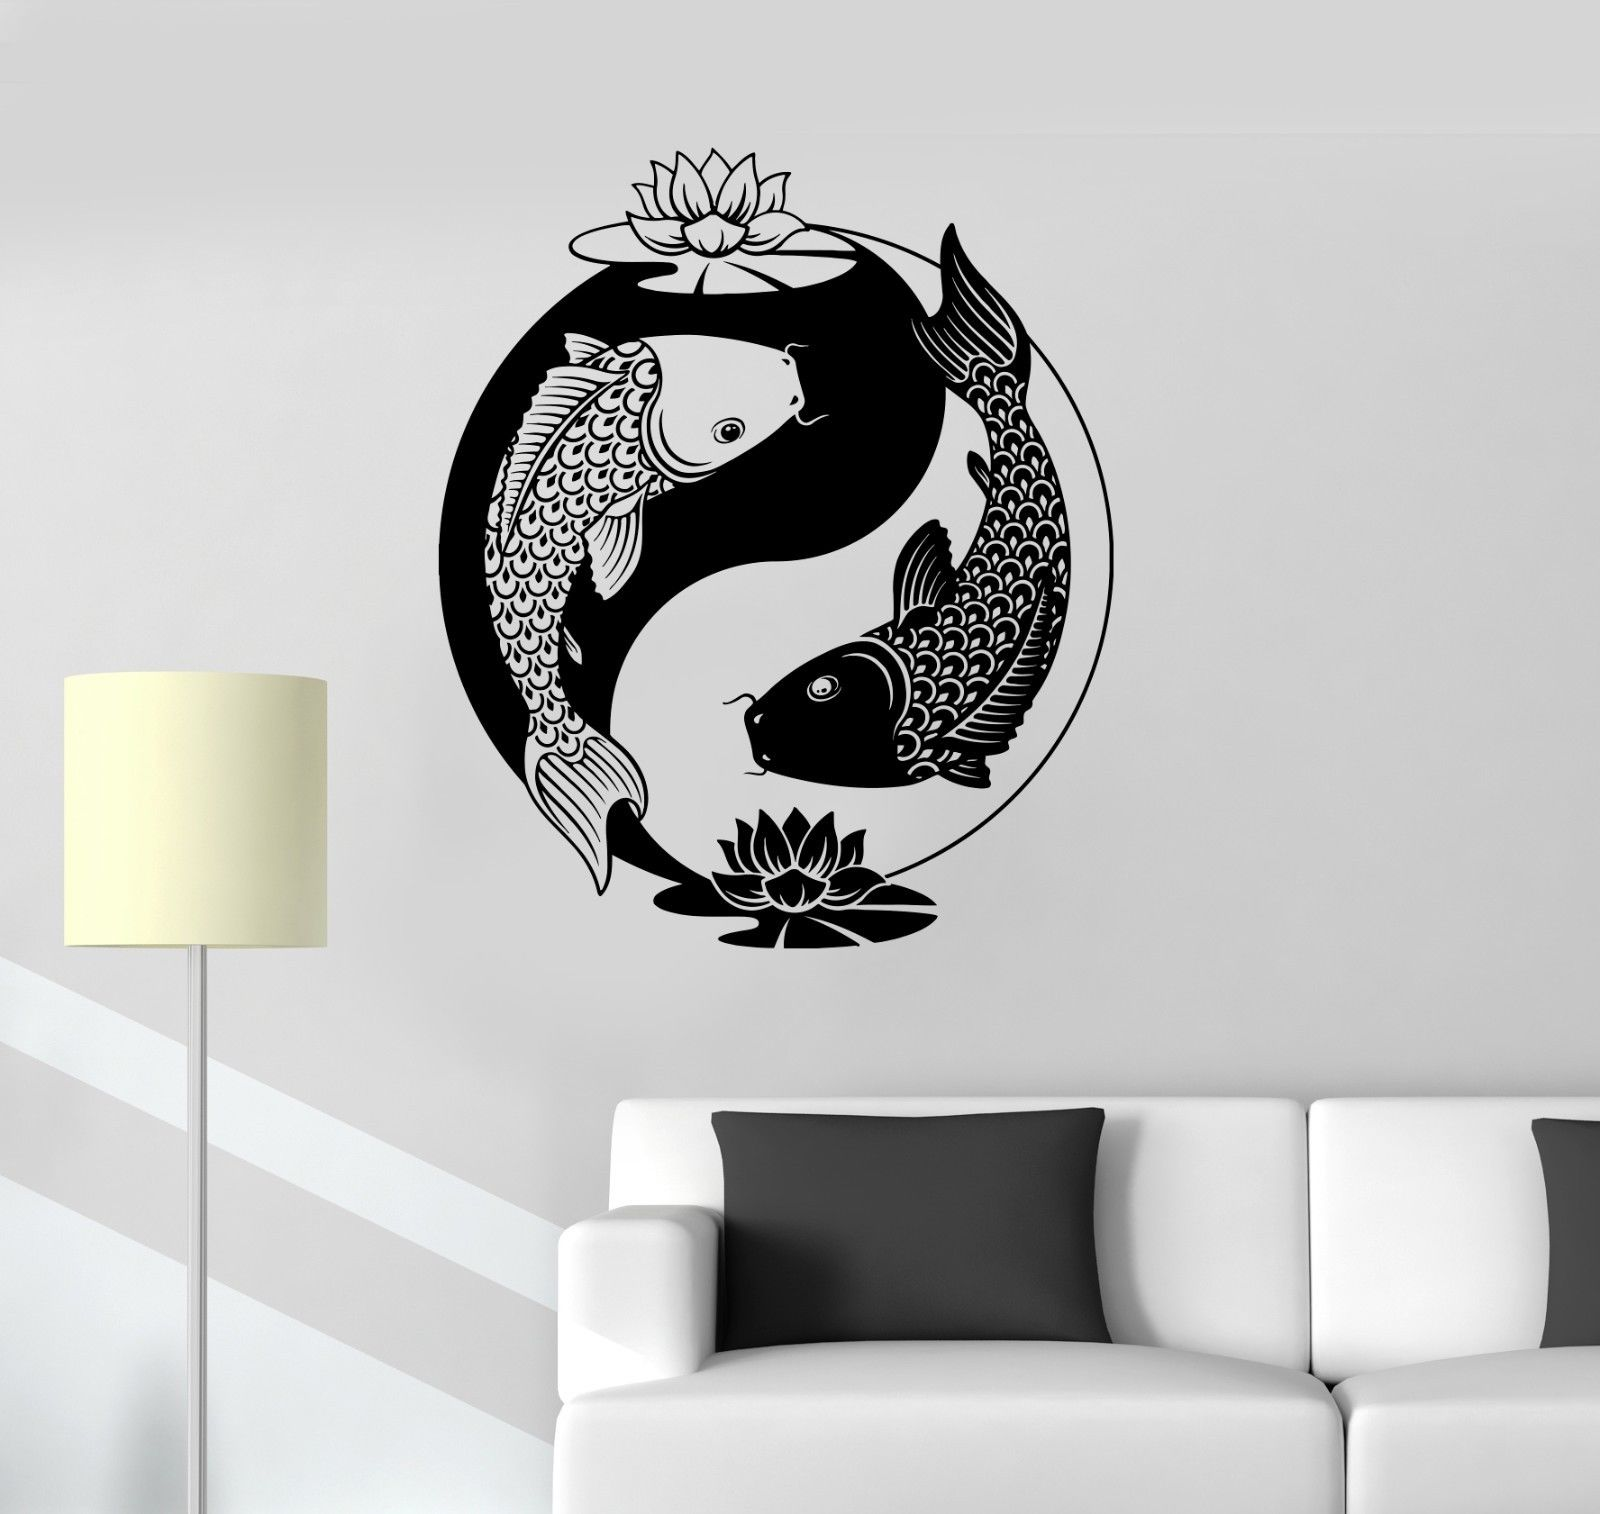 Yin Yang Tai Lotus Chinese Philosophy Zen Fish Vinyl Wall Sticker - Home decor